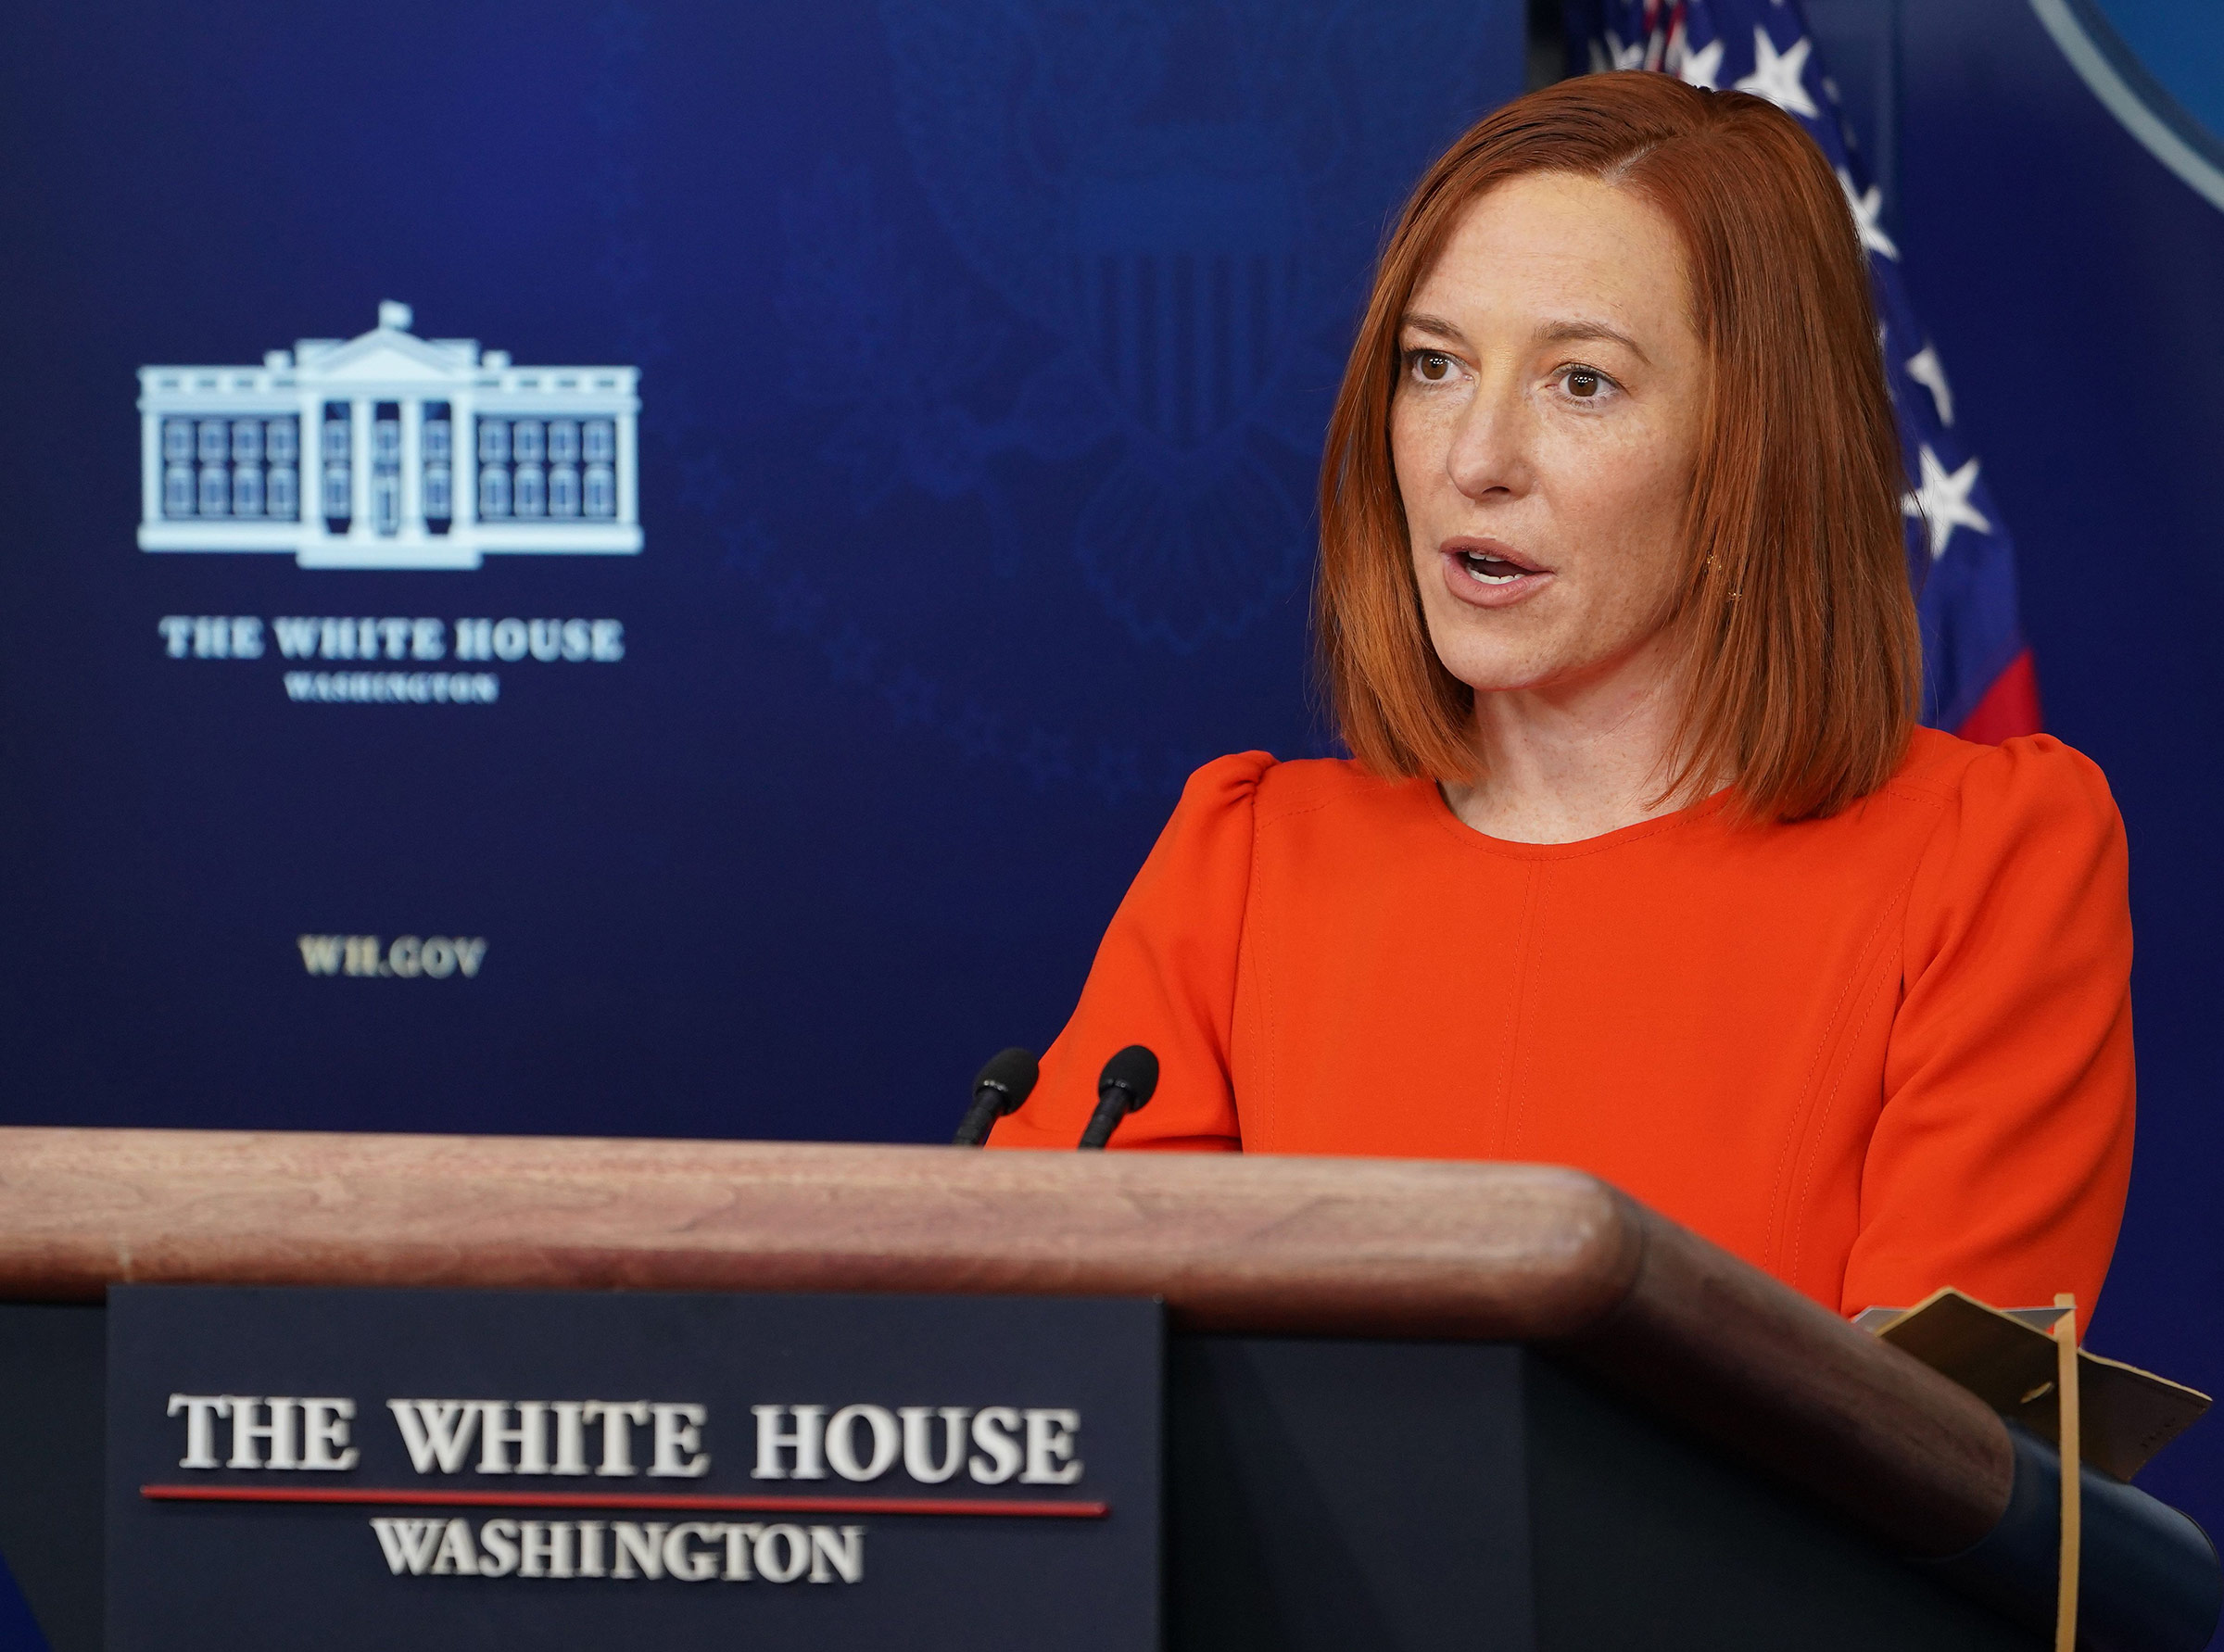 White House Press Secretary Jen Psaki speaks during a briefing at the White House in Washington, DC, on January 21.